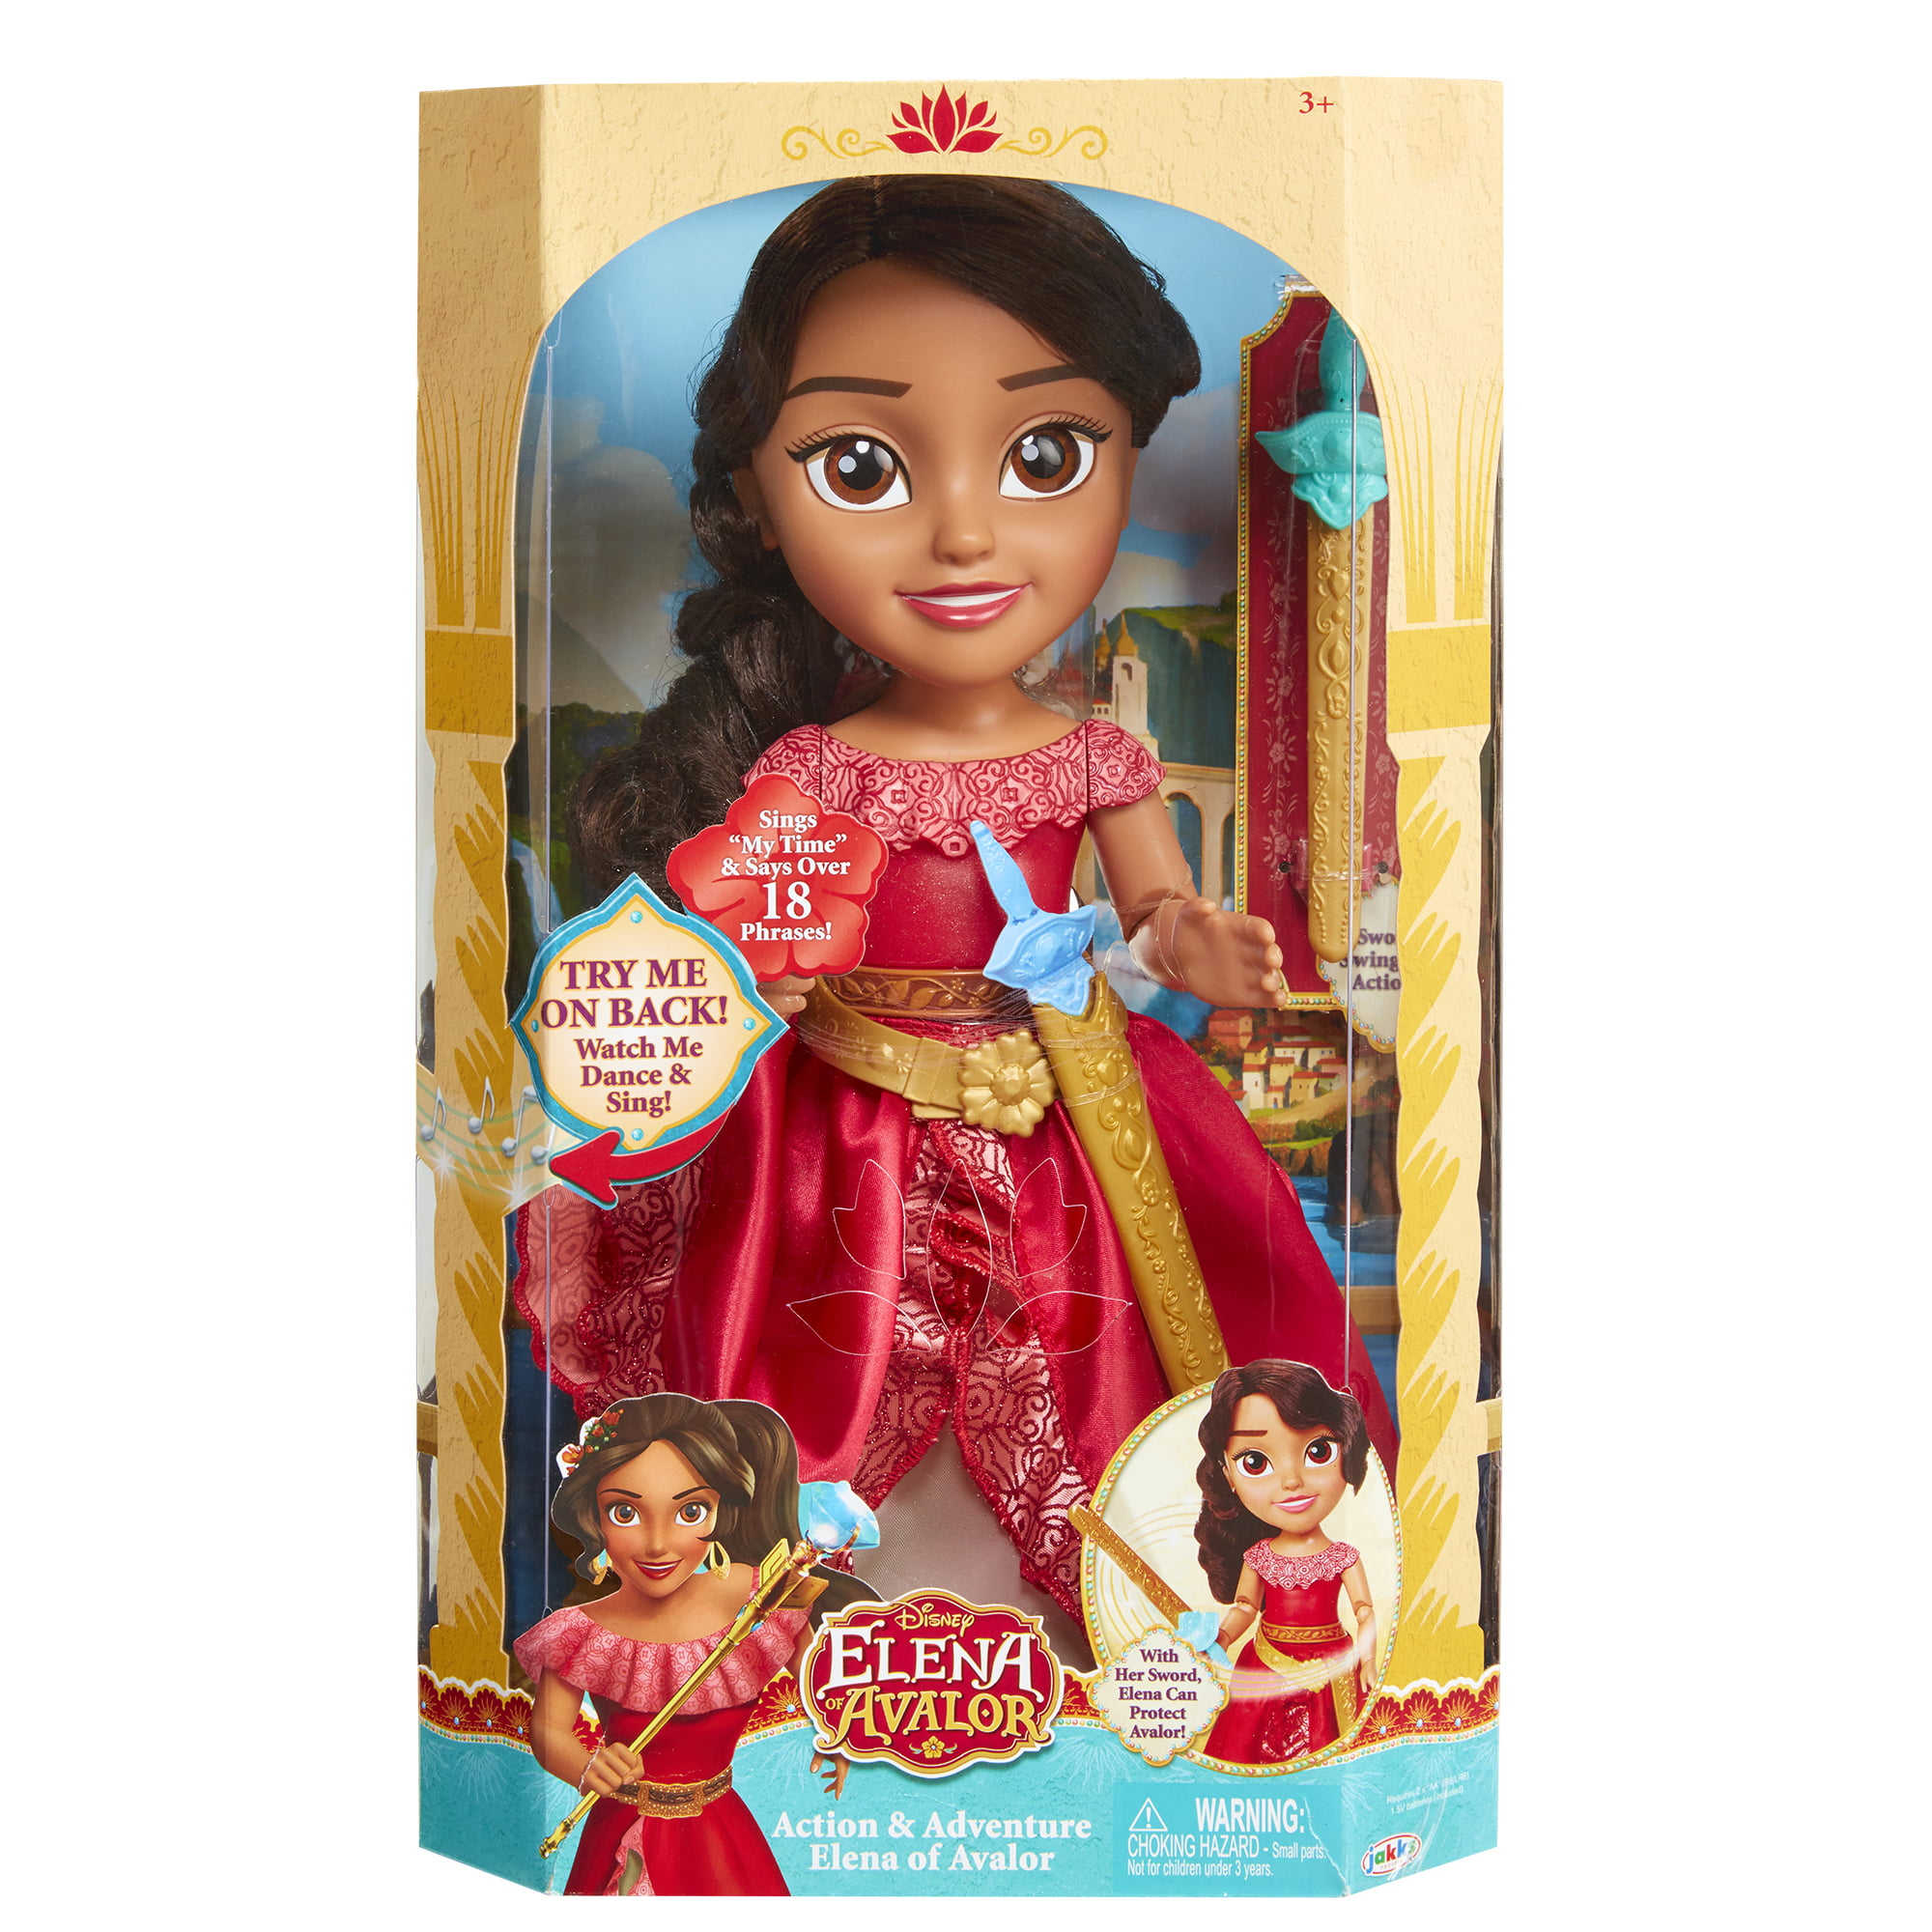 Action & Adventure Disney Princess Elena of Avalor Doll by Jakks Pacific